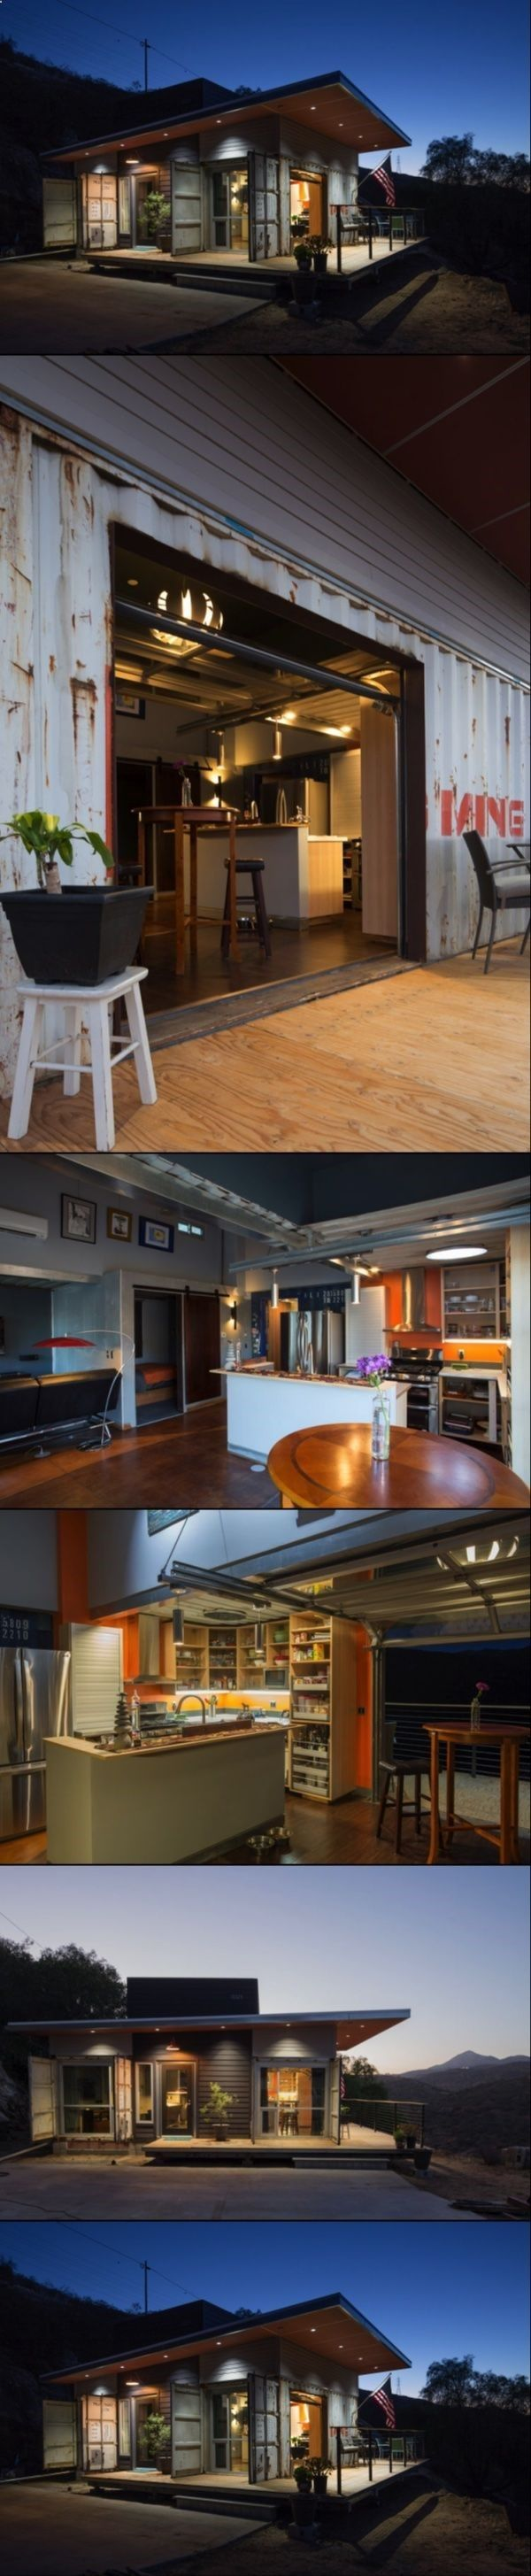 Container House - A Rustic Shipping Container Home Built on a Budget  written by: Luke